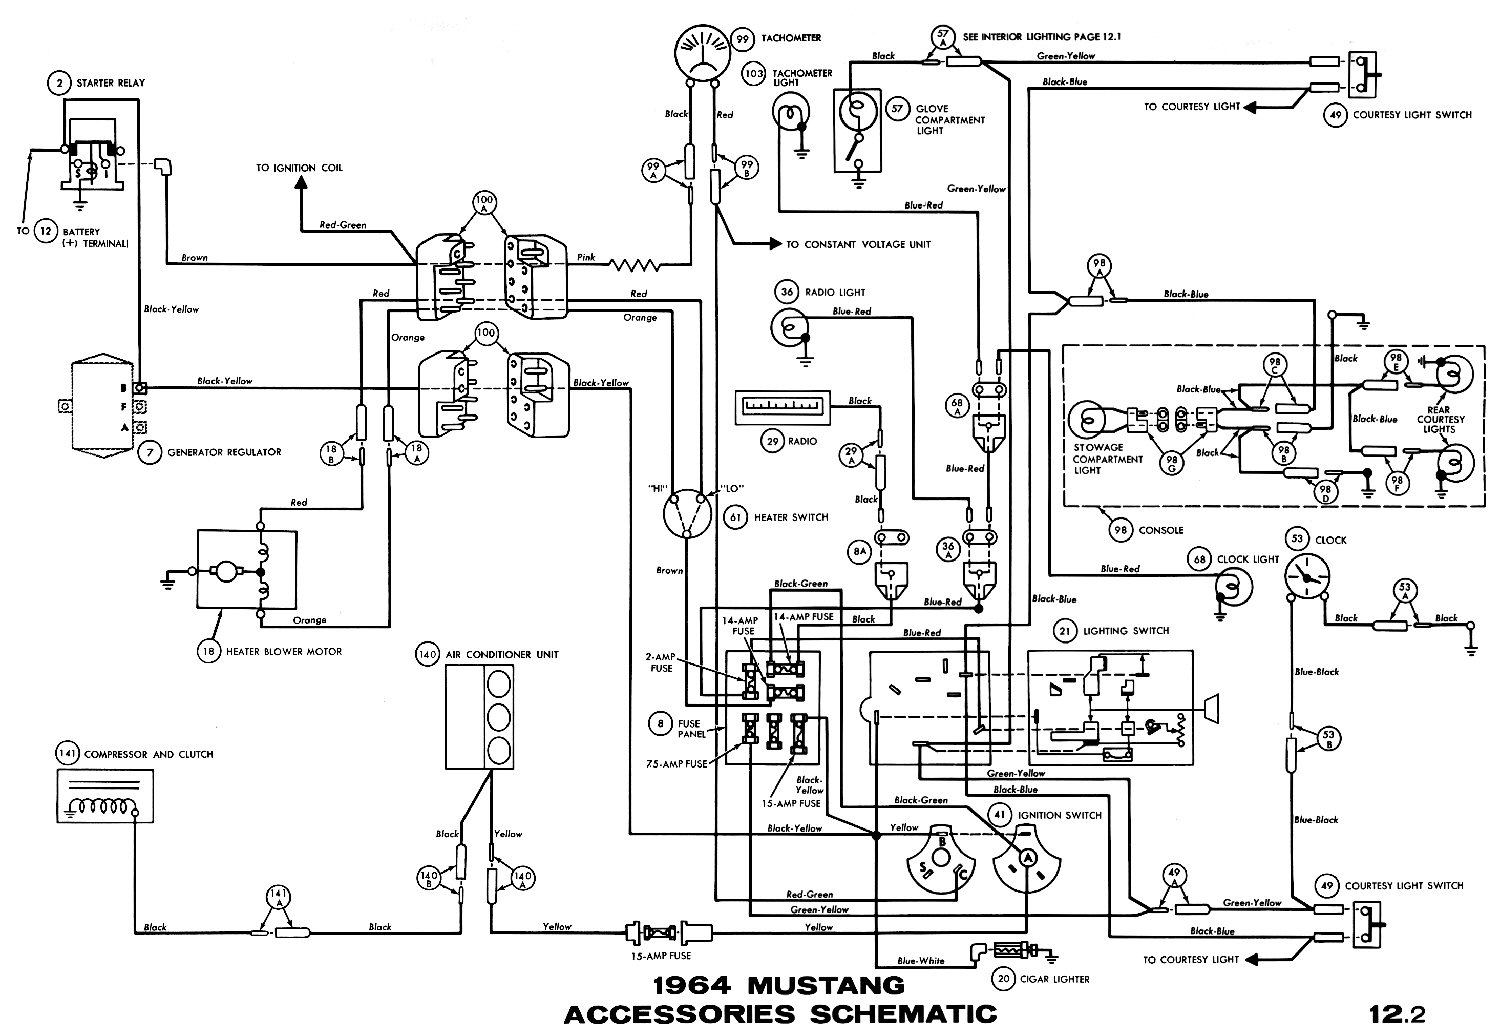 1964m 1964 mustang wiring diagrams average joe restoration  at soozxer.org